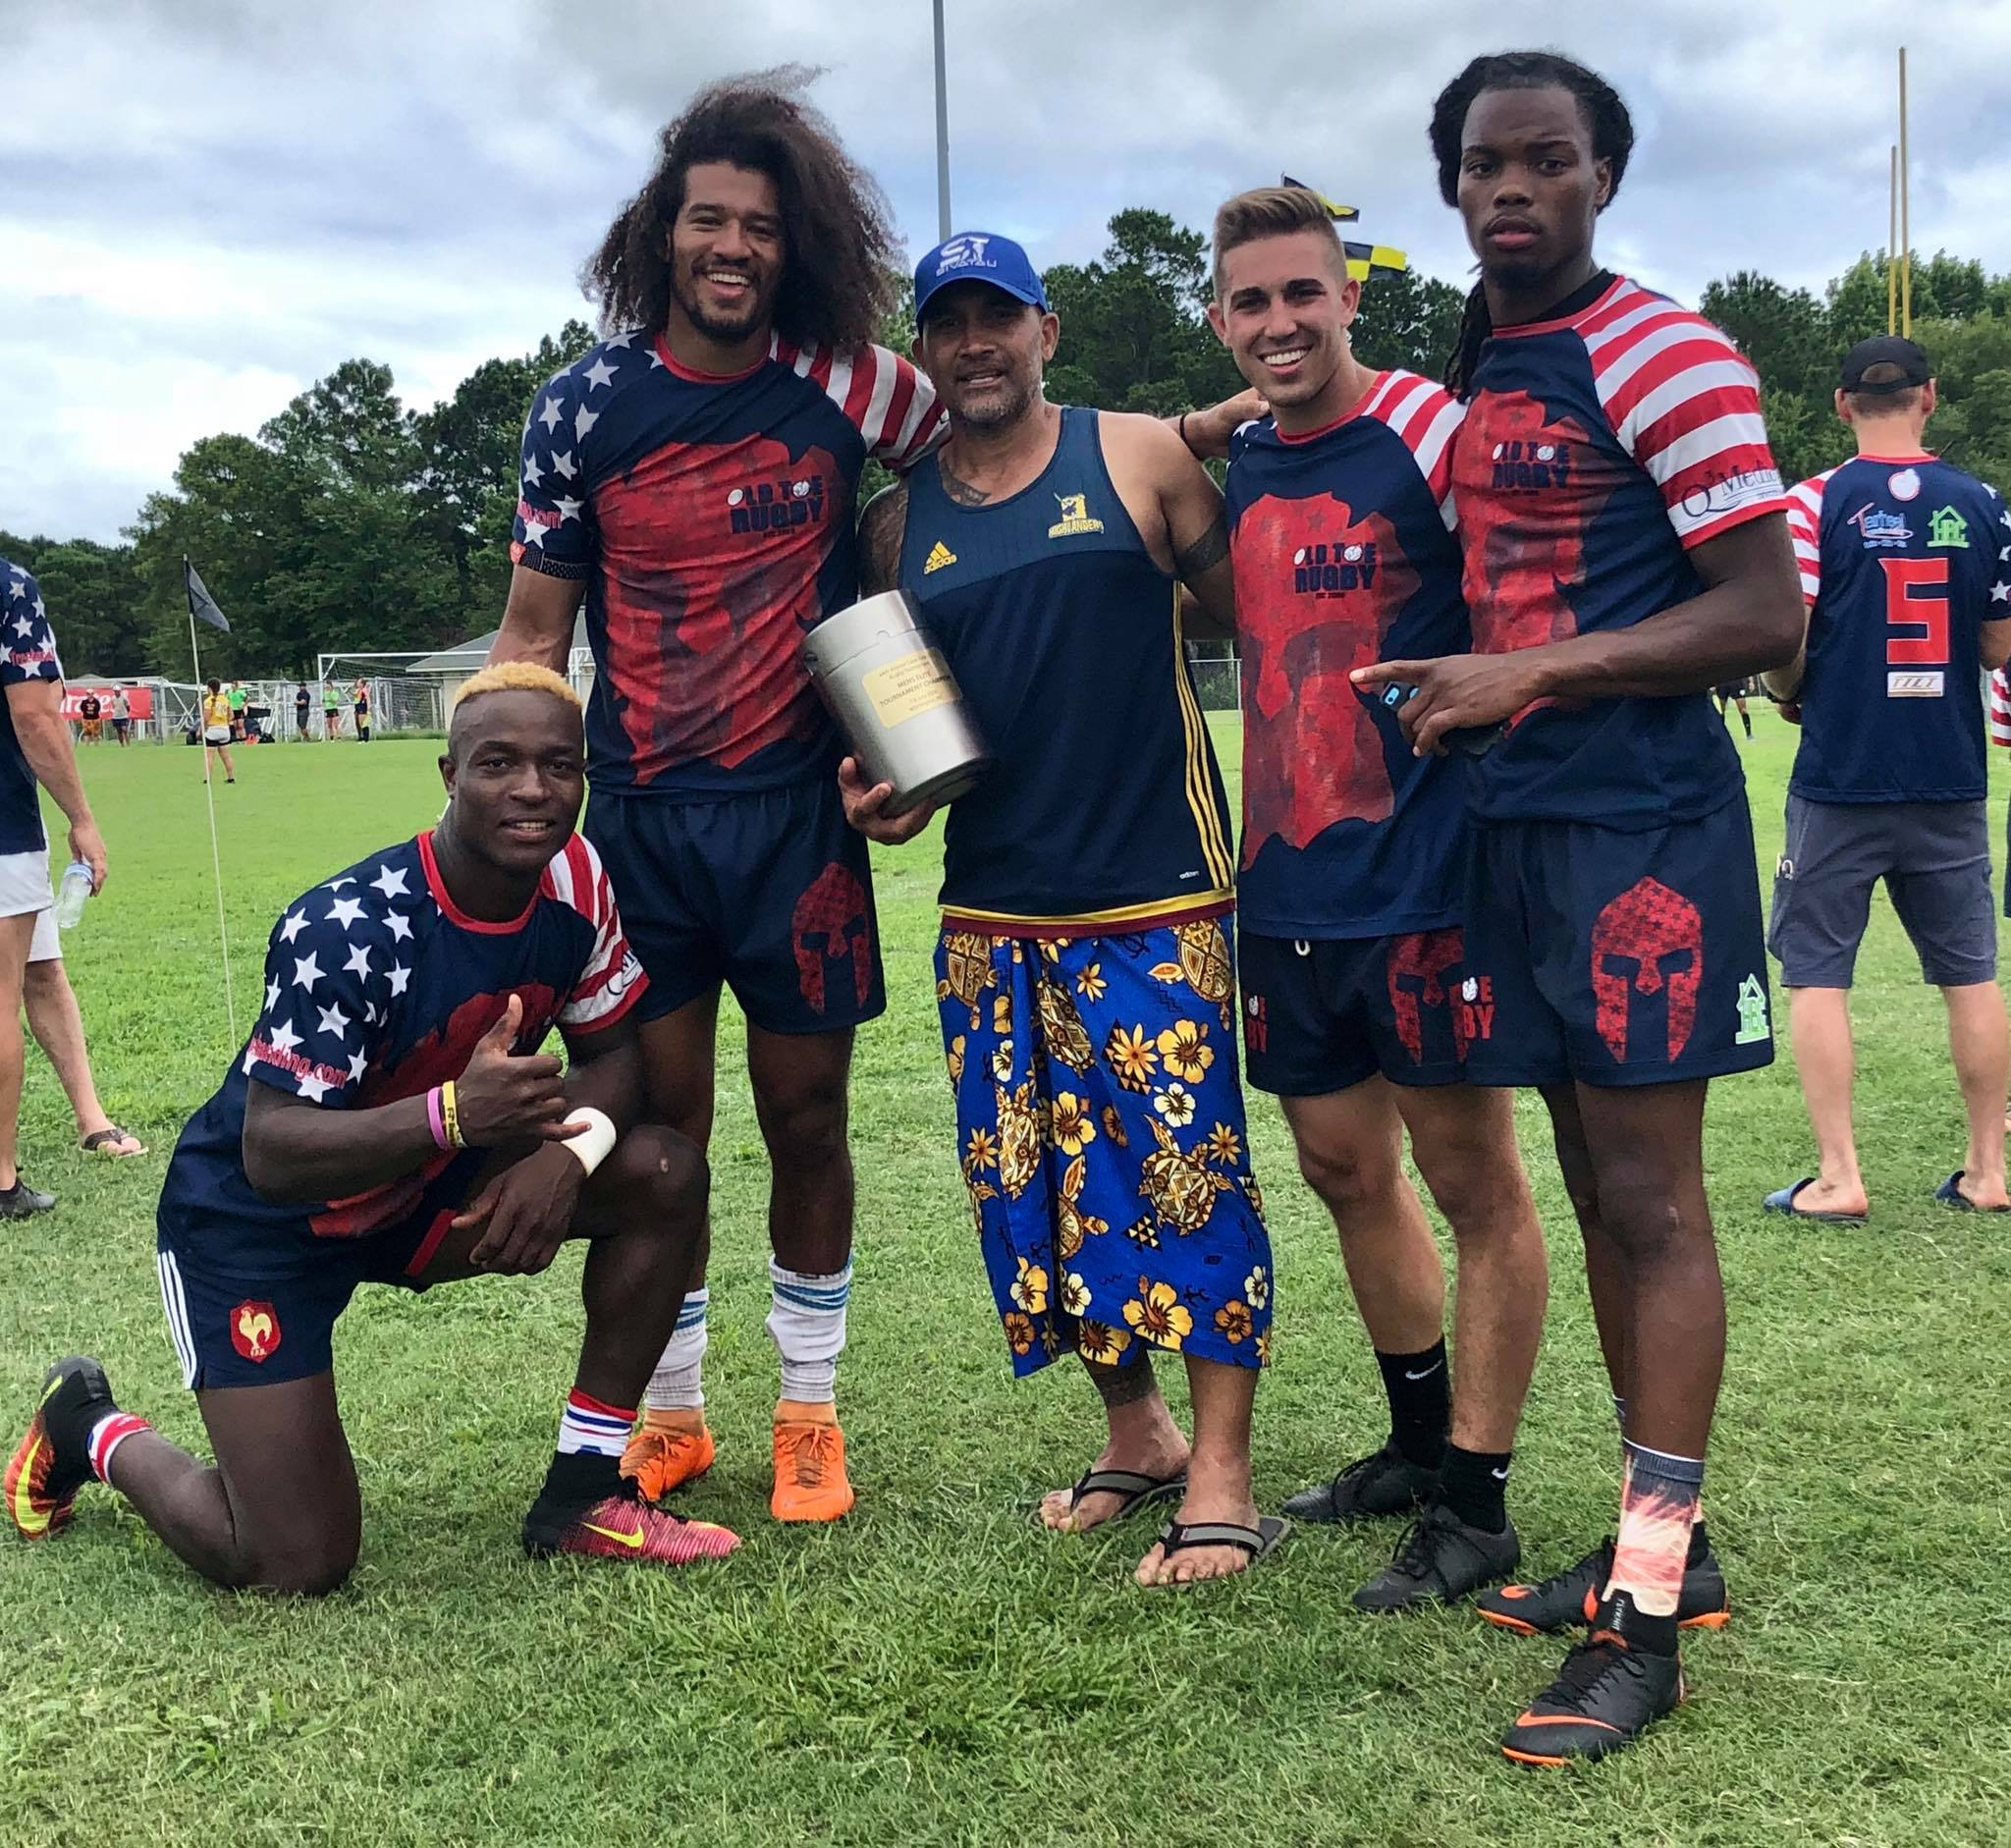 CoreyJonesRugby with team Old Toe- 2018 Cape Fear's Cup Champs